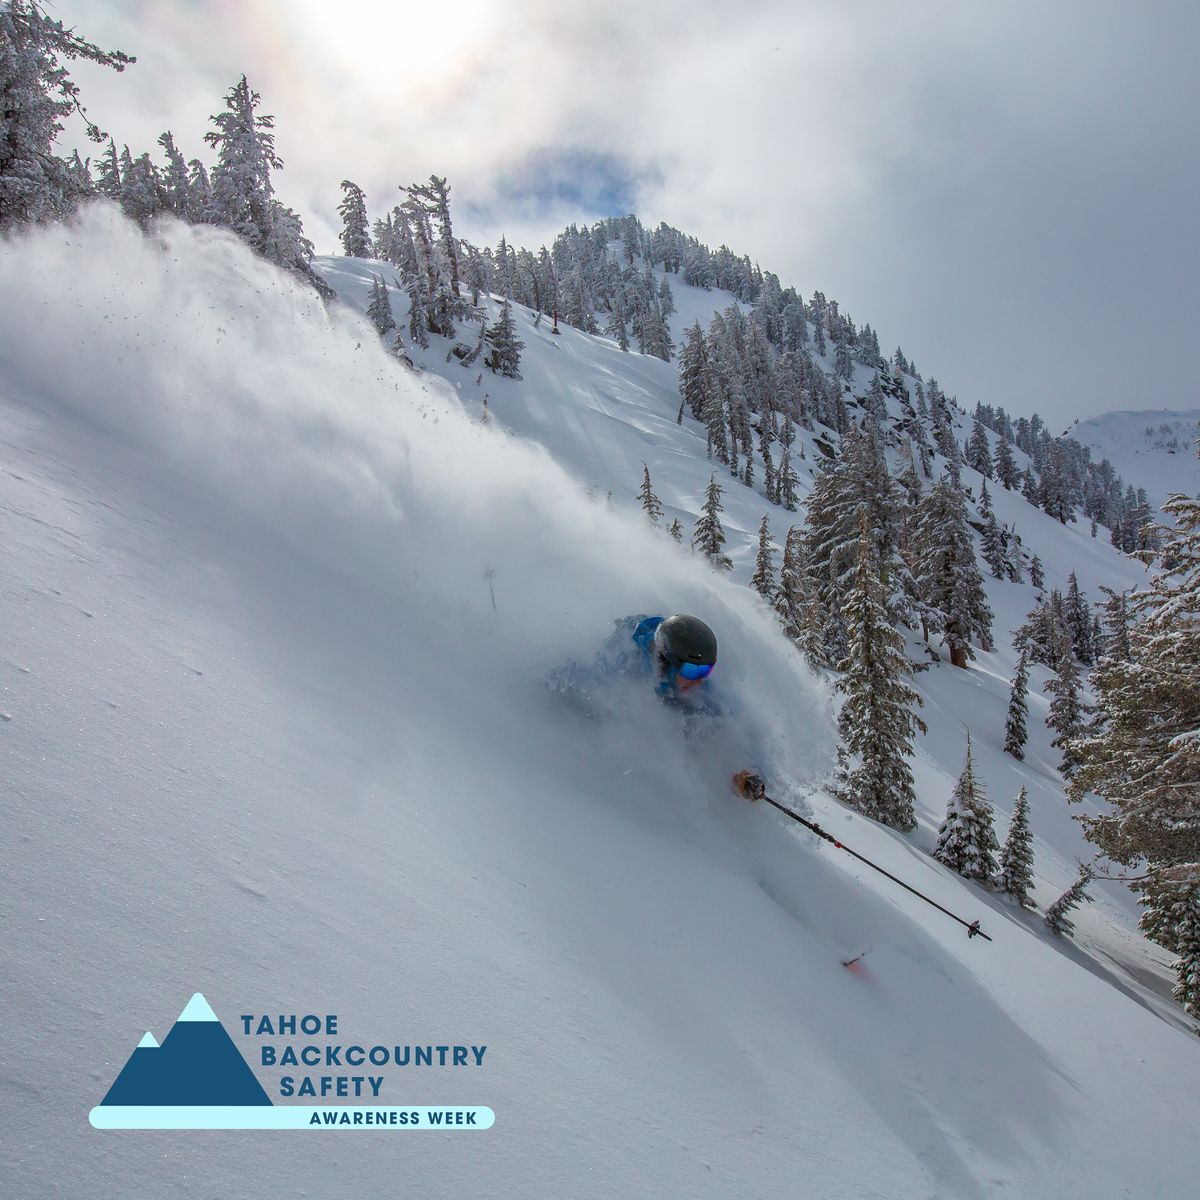 Tune into the Tahoe Backcountry Safety Awareness Week